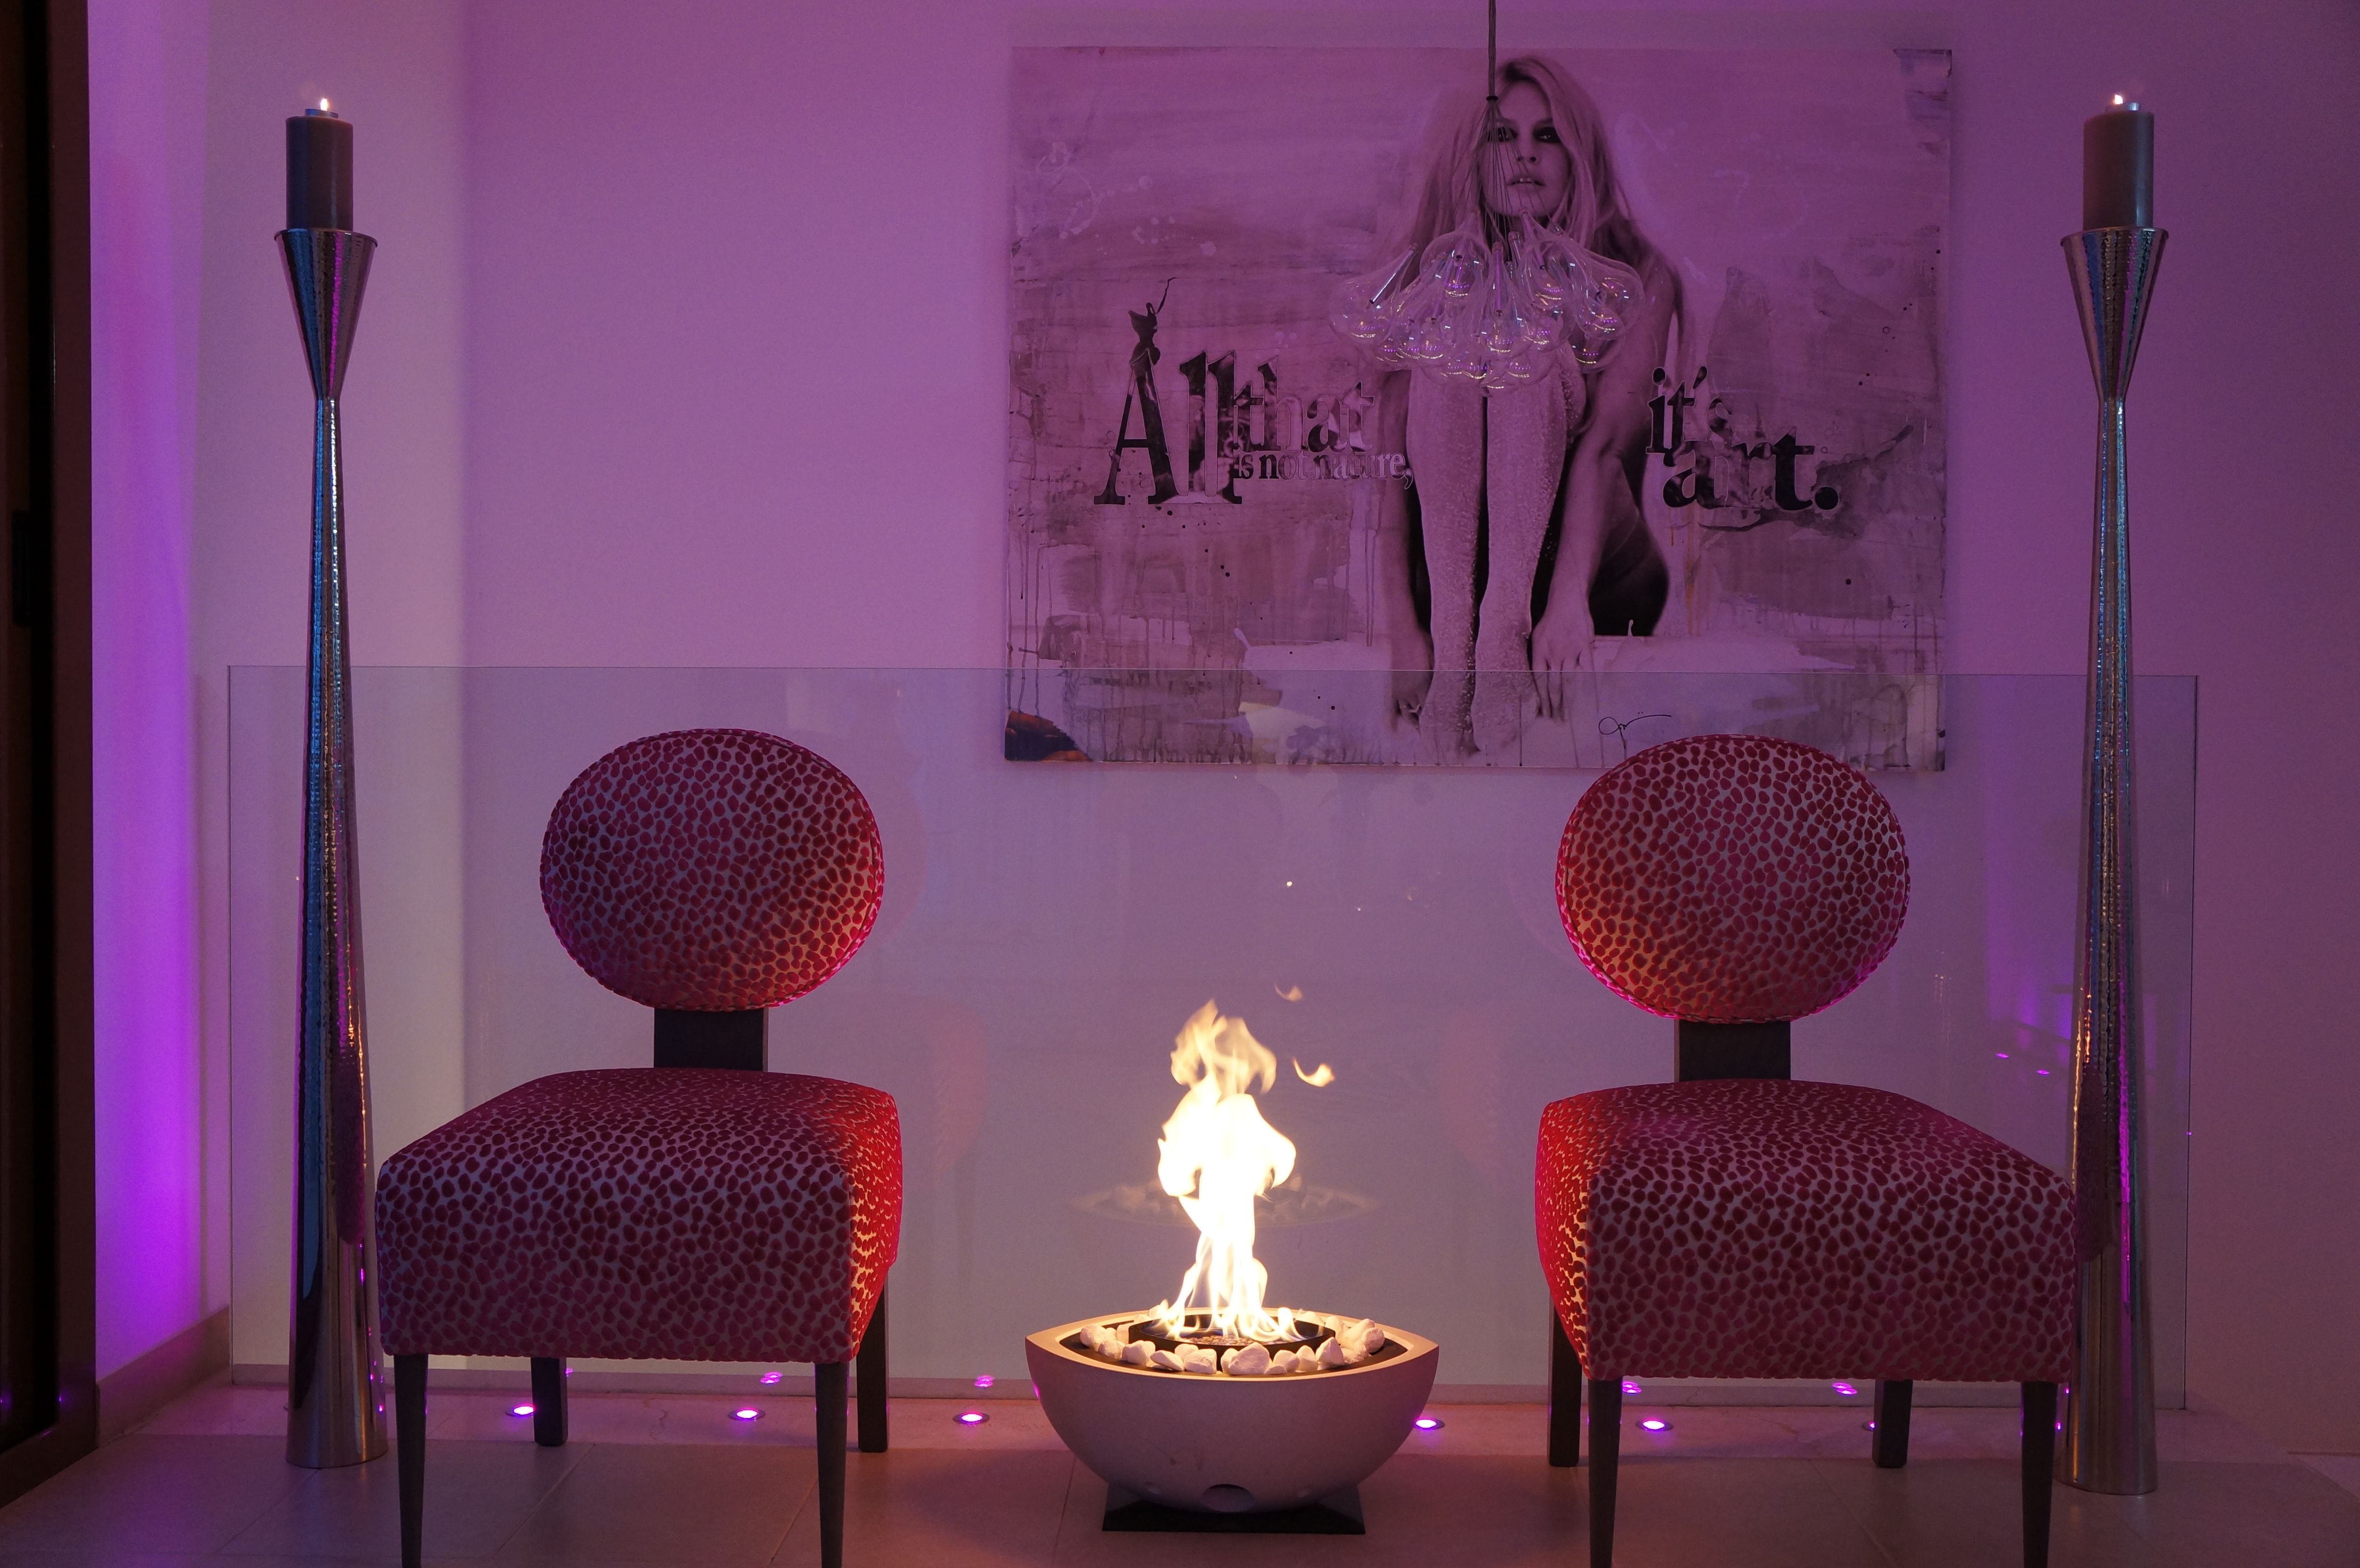 Bespoke Chairs and Lighting with Artwork Designed by Sophie Peckett Design www.sophiepeckettdesign.com